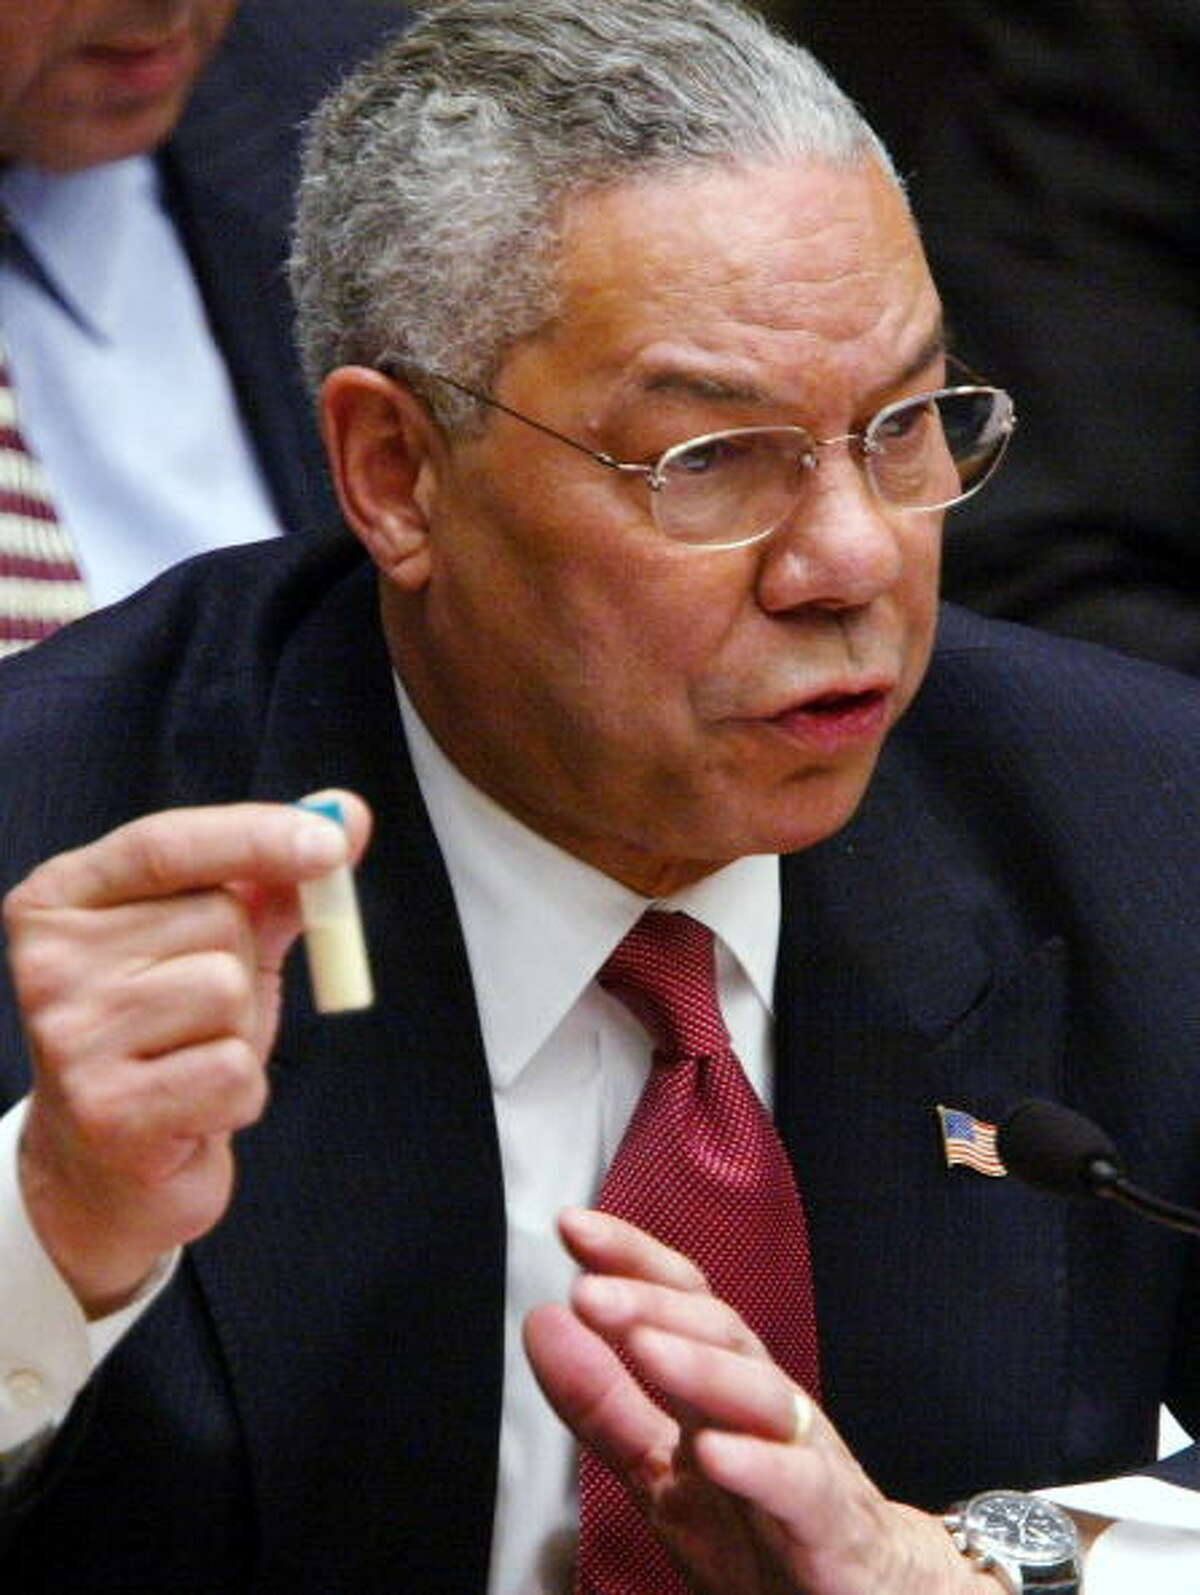 """Ex-Secretary of State Colin Powell, as self-identified Republican who served under three GOP presidents, announces he is voting for Hillary Clinton. Powell has described Donald Trump as """"a national disgrace and an international pariah."""""""